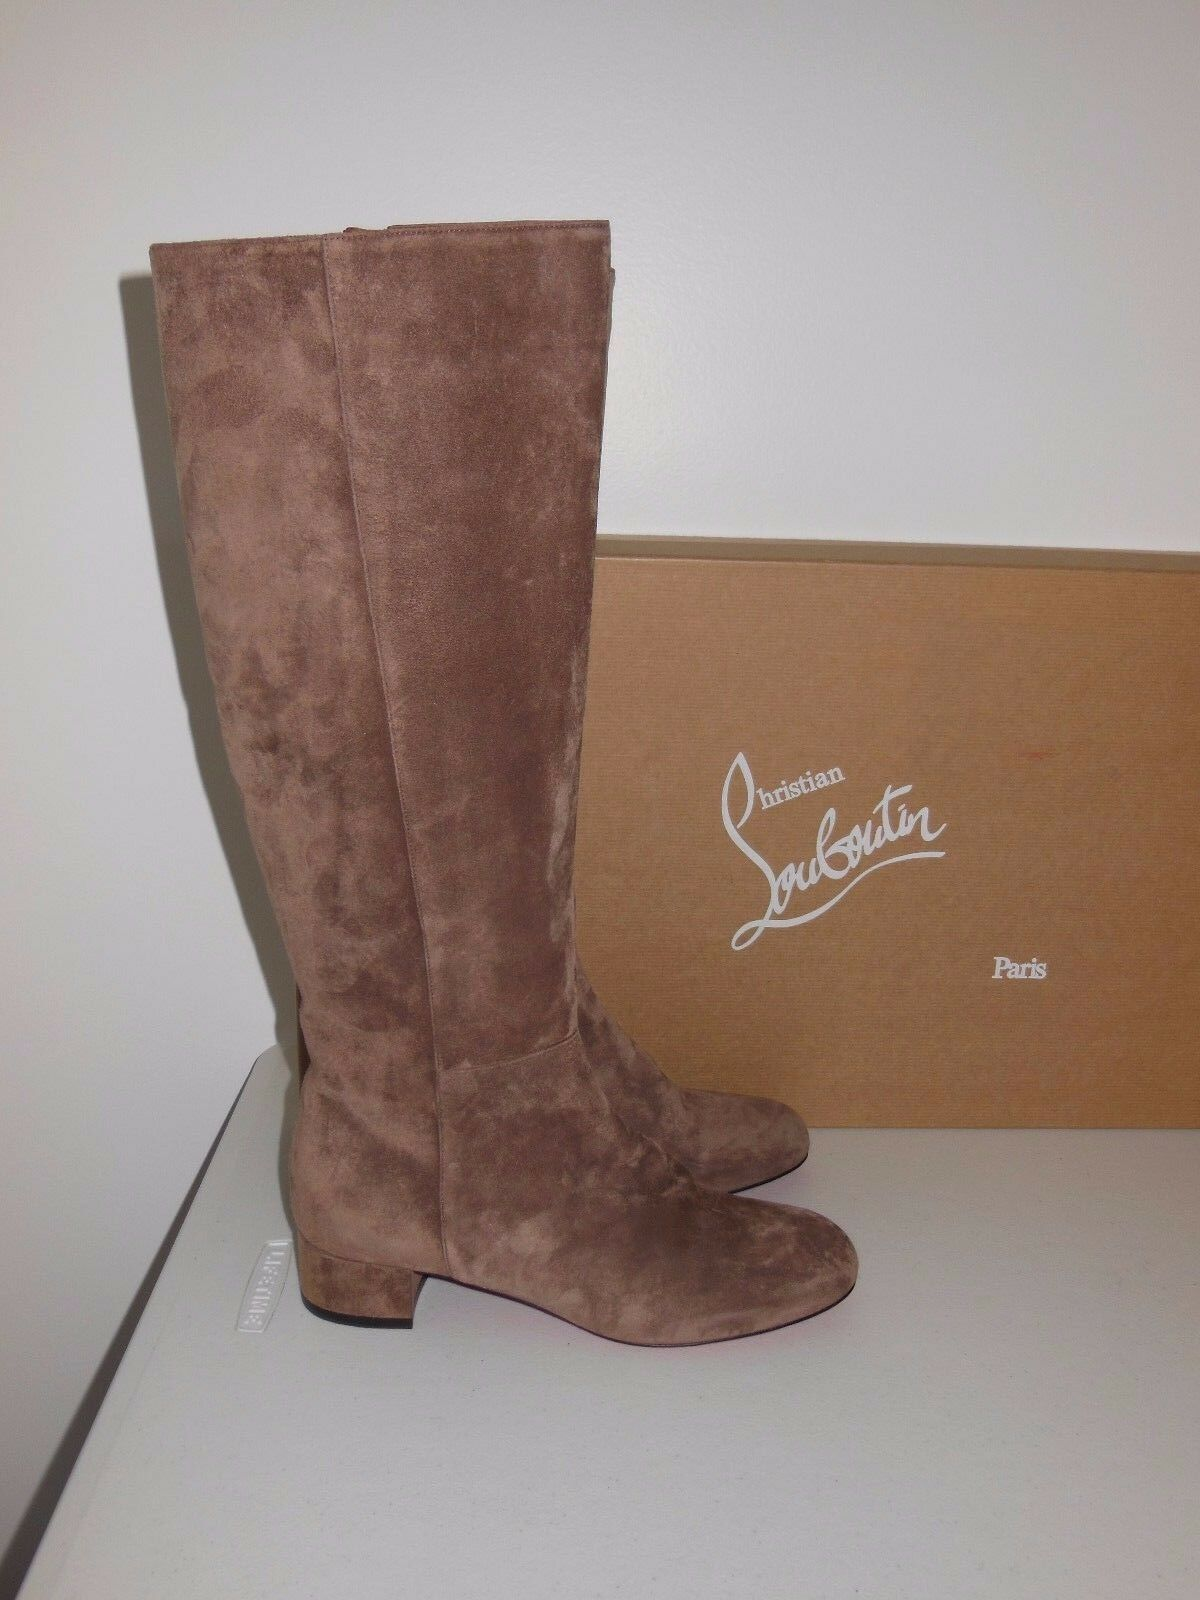 CHRISTIAN LOUBOUTIN LILI SUEDE 30MM KNEE HIGH BOOTS SIZE 39.5